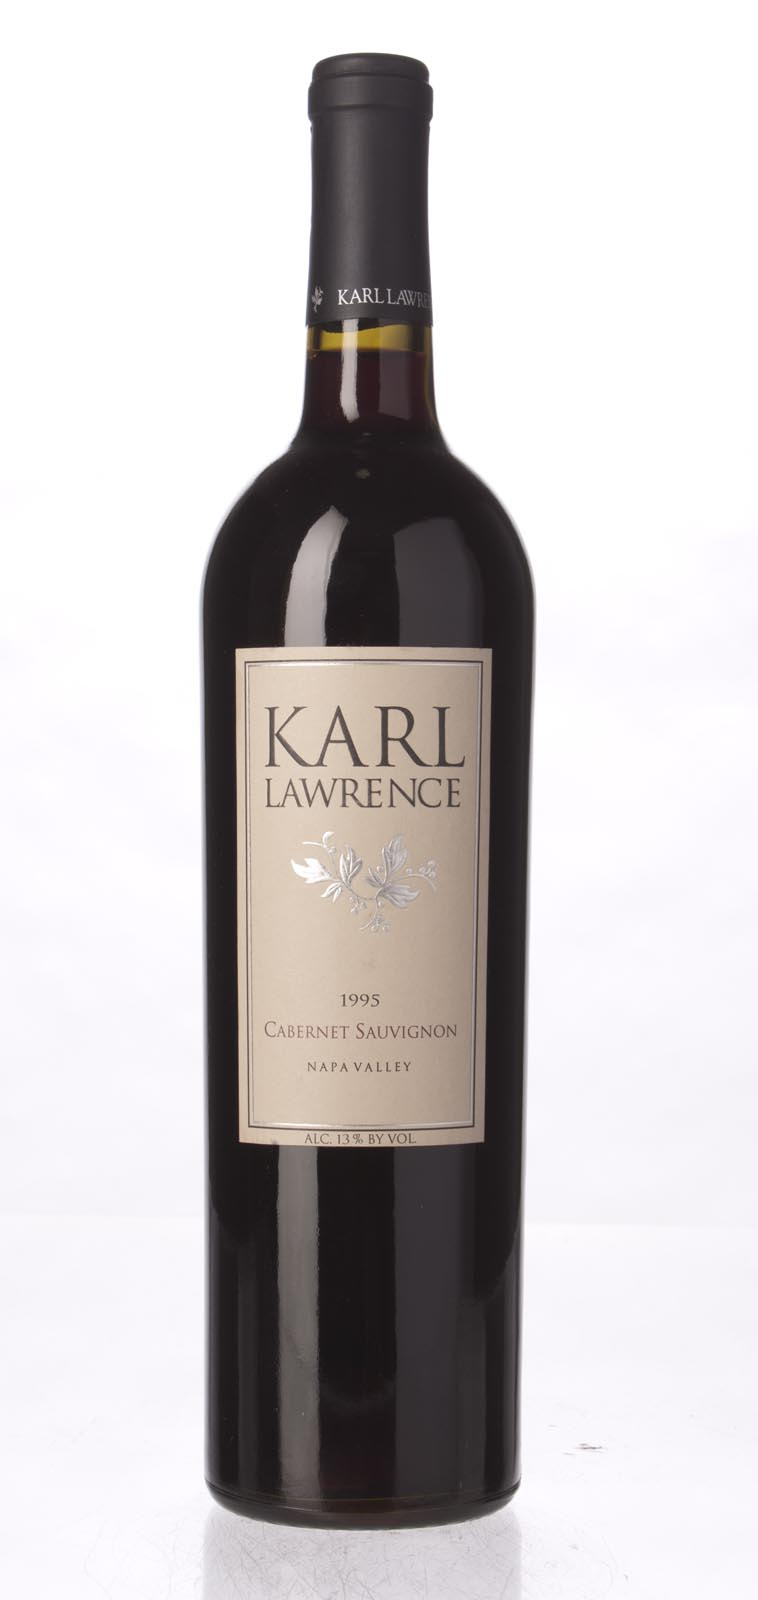 Karl Lawrence Cabernet Sauvignon Napa Valley 1995, 750mL () from The BPW - Merchants of rare and fine wines.